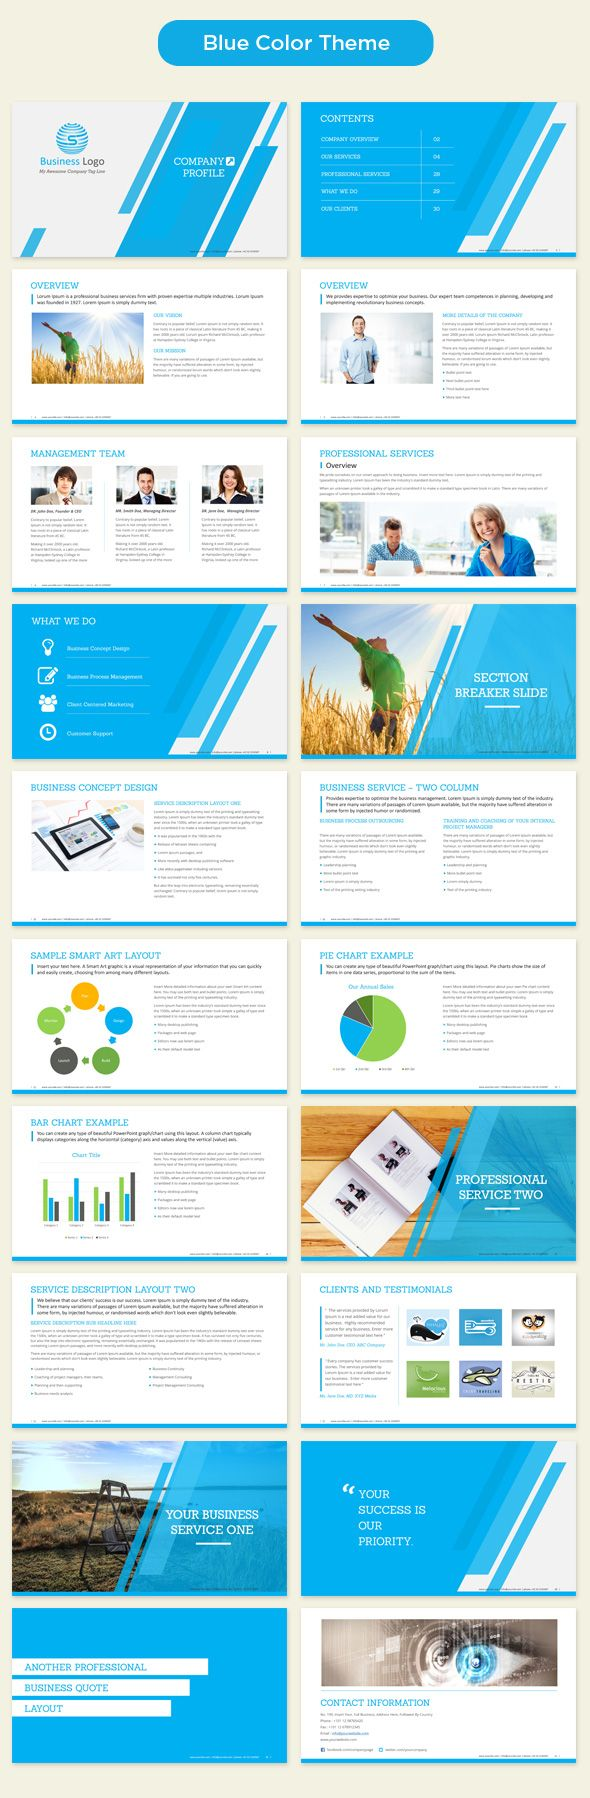 Company profile format erkalnathandedecker 102 best company profile design images on pinterest company friedricerecipe Choice Image